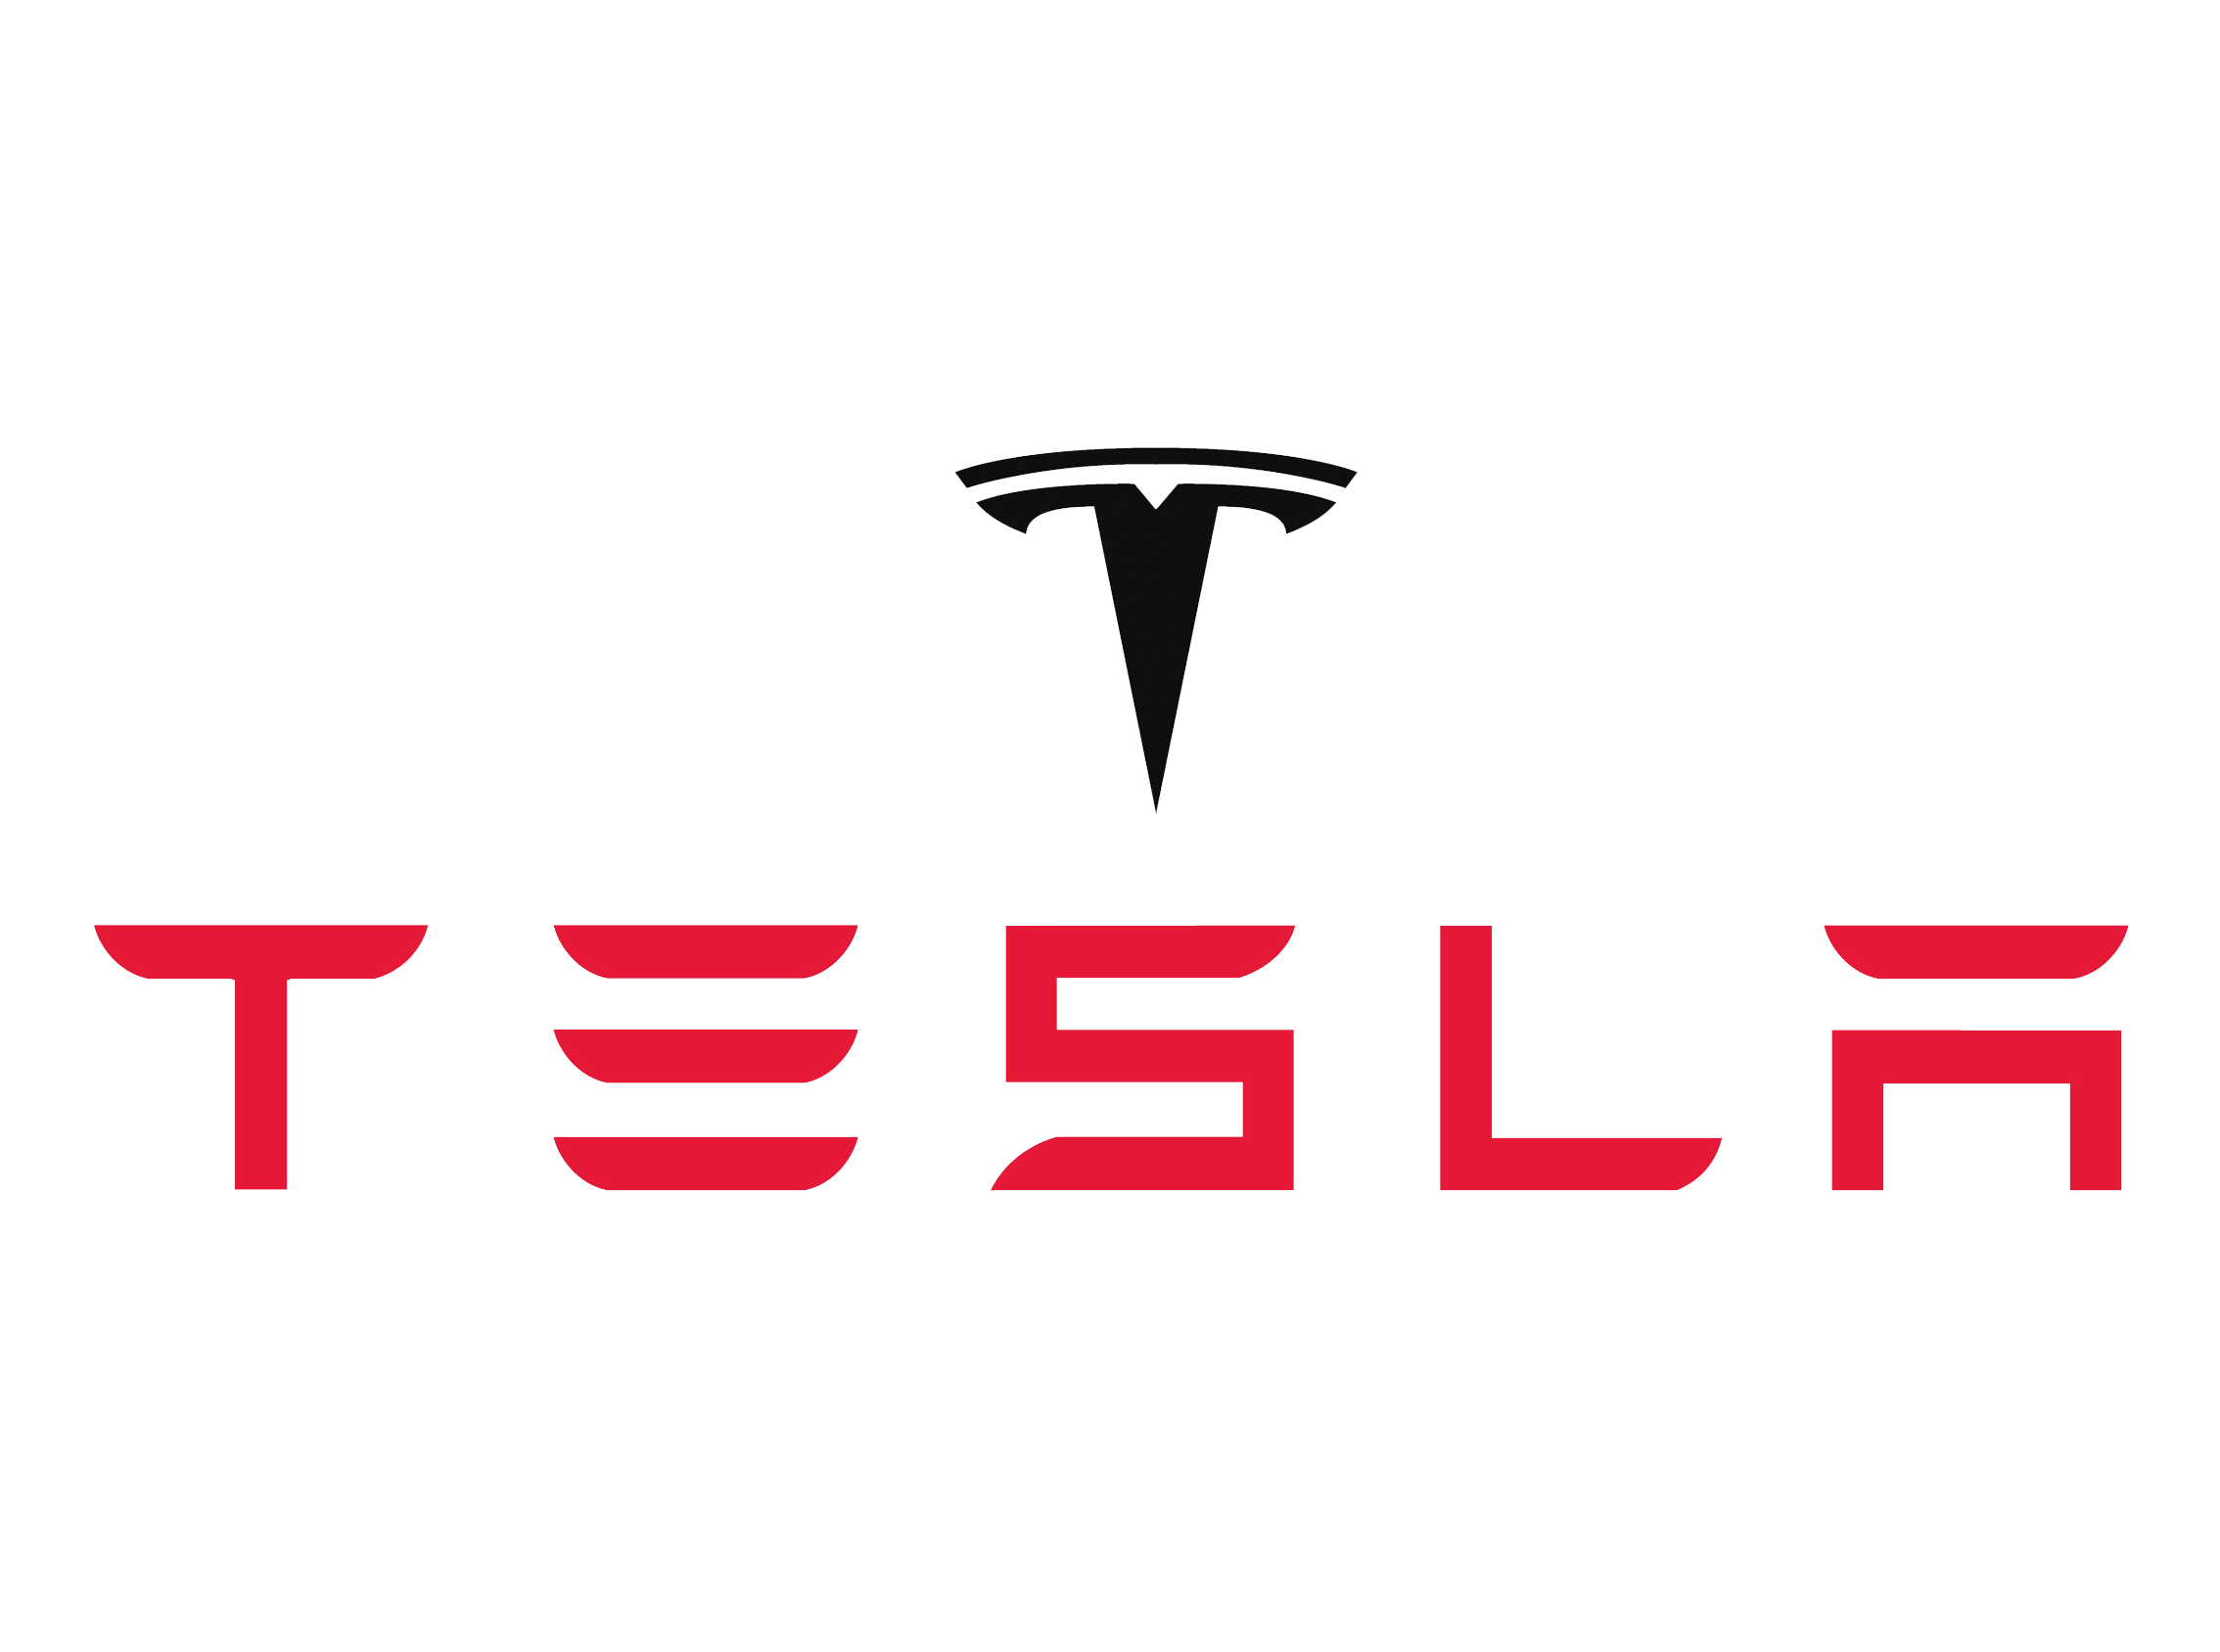 Tesla Logo Download Tesla Vector Logo Svg From Logotyp Us